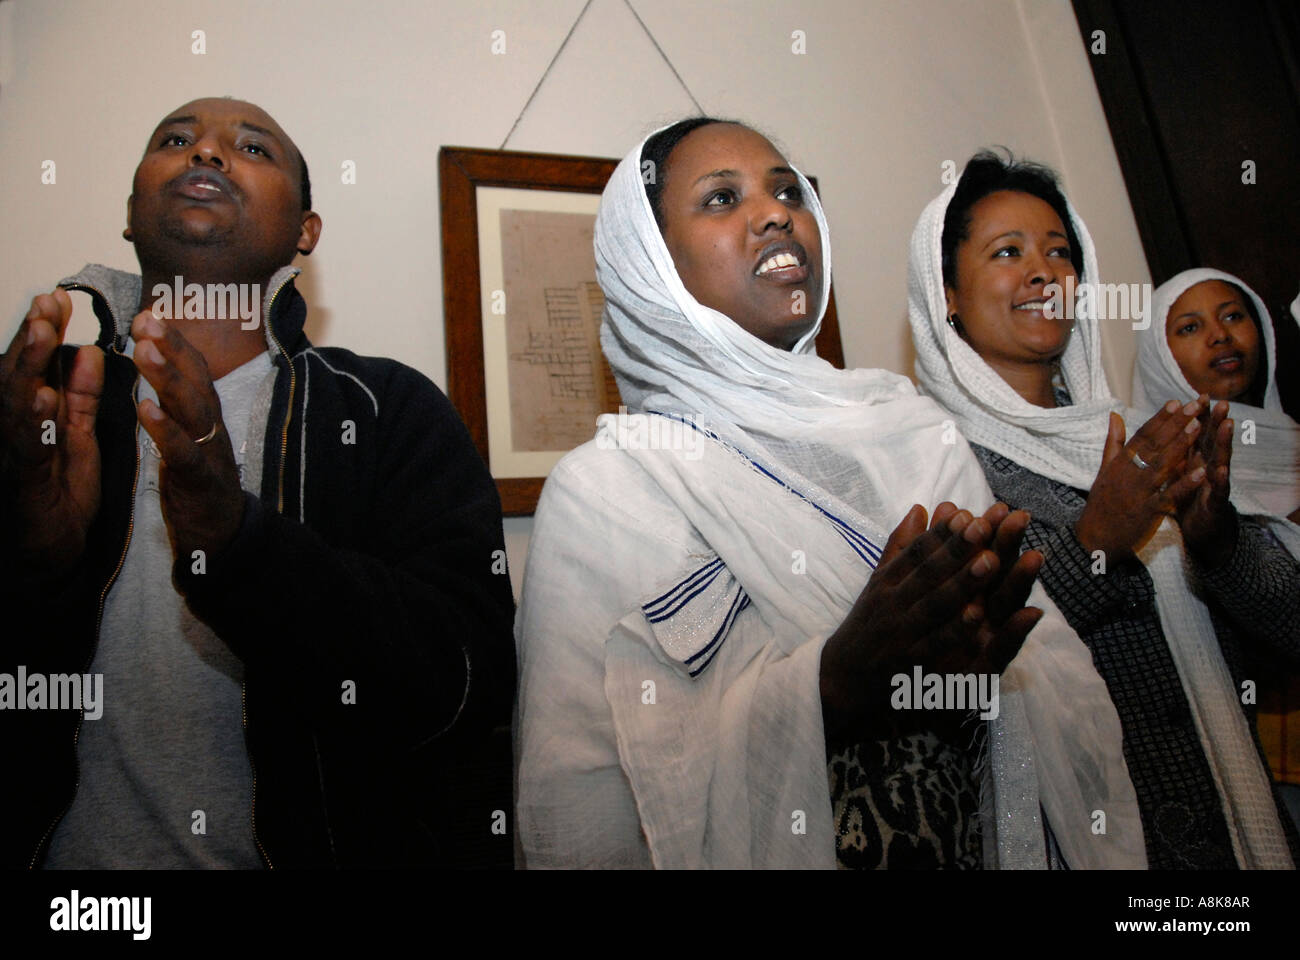 Chanting after service at Ethiopian Orthodox Tewahedo church Central London. - Stock Image